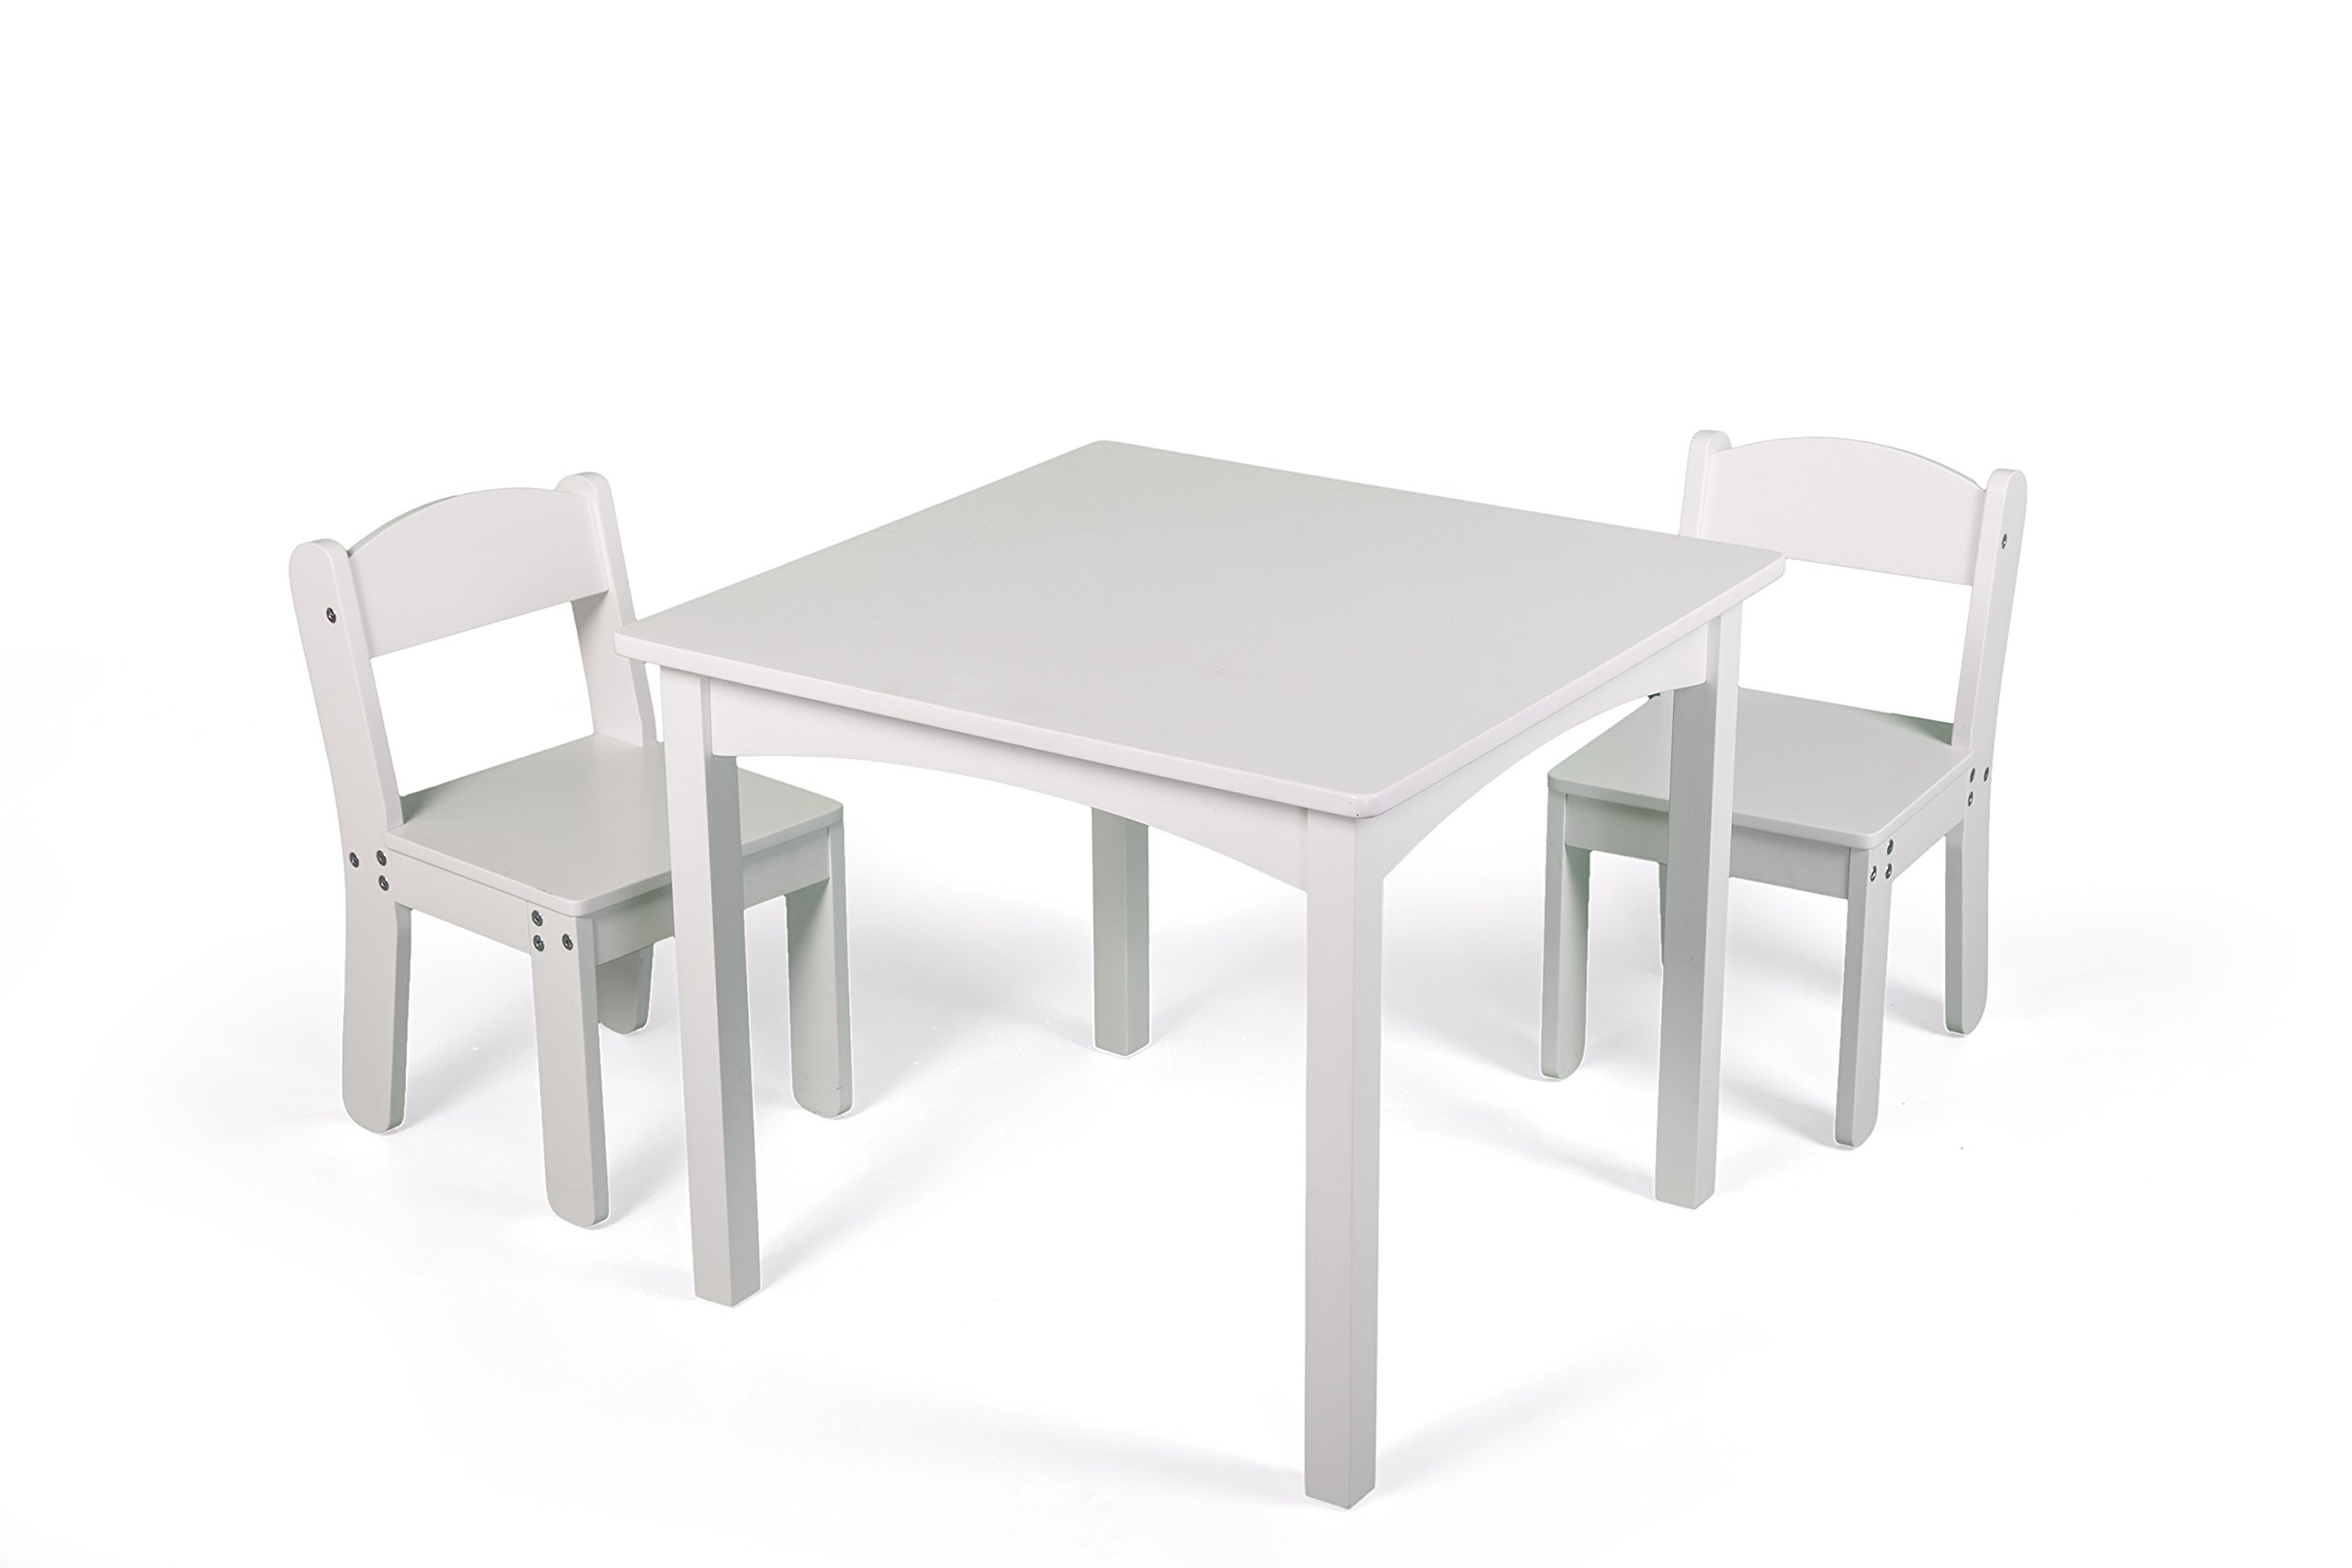 WonkaWoo Kids Deluxe Table & Chair Set, White, One Size